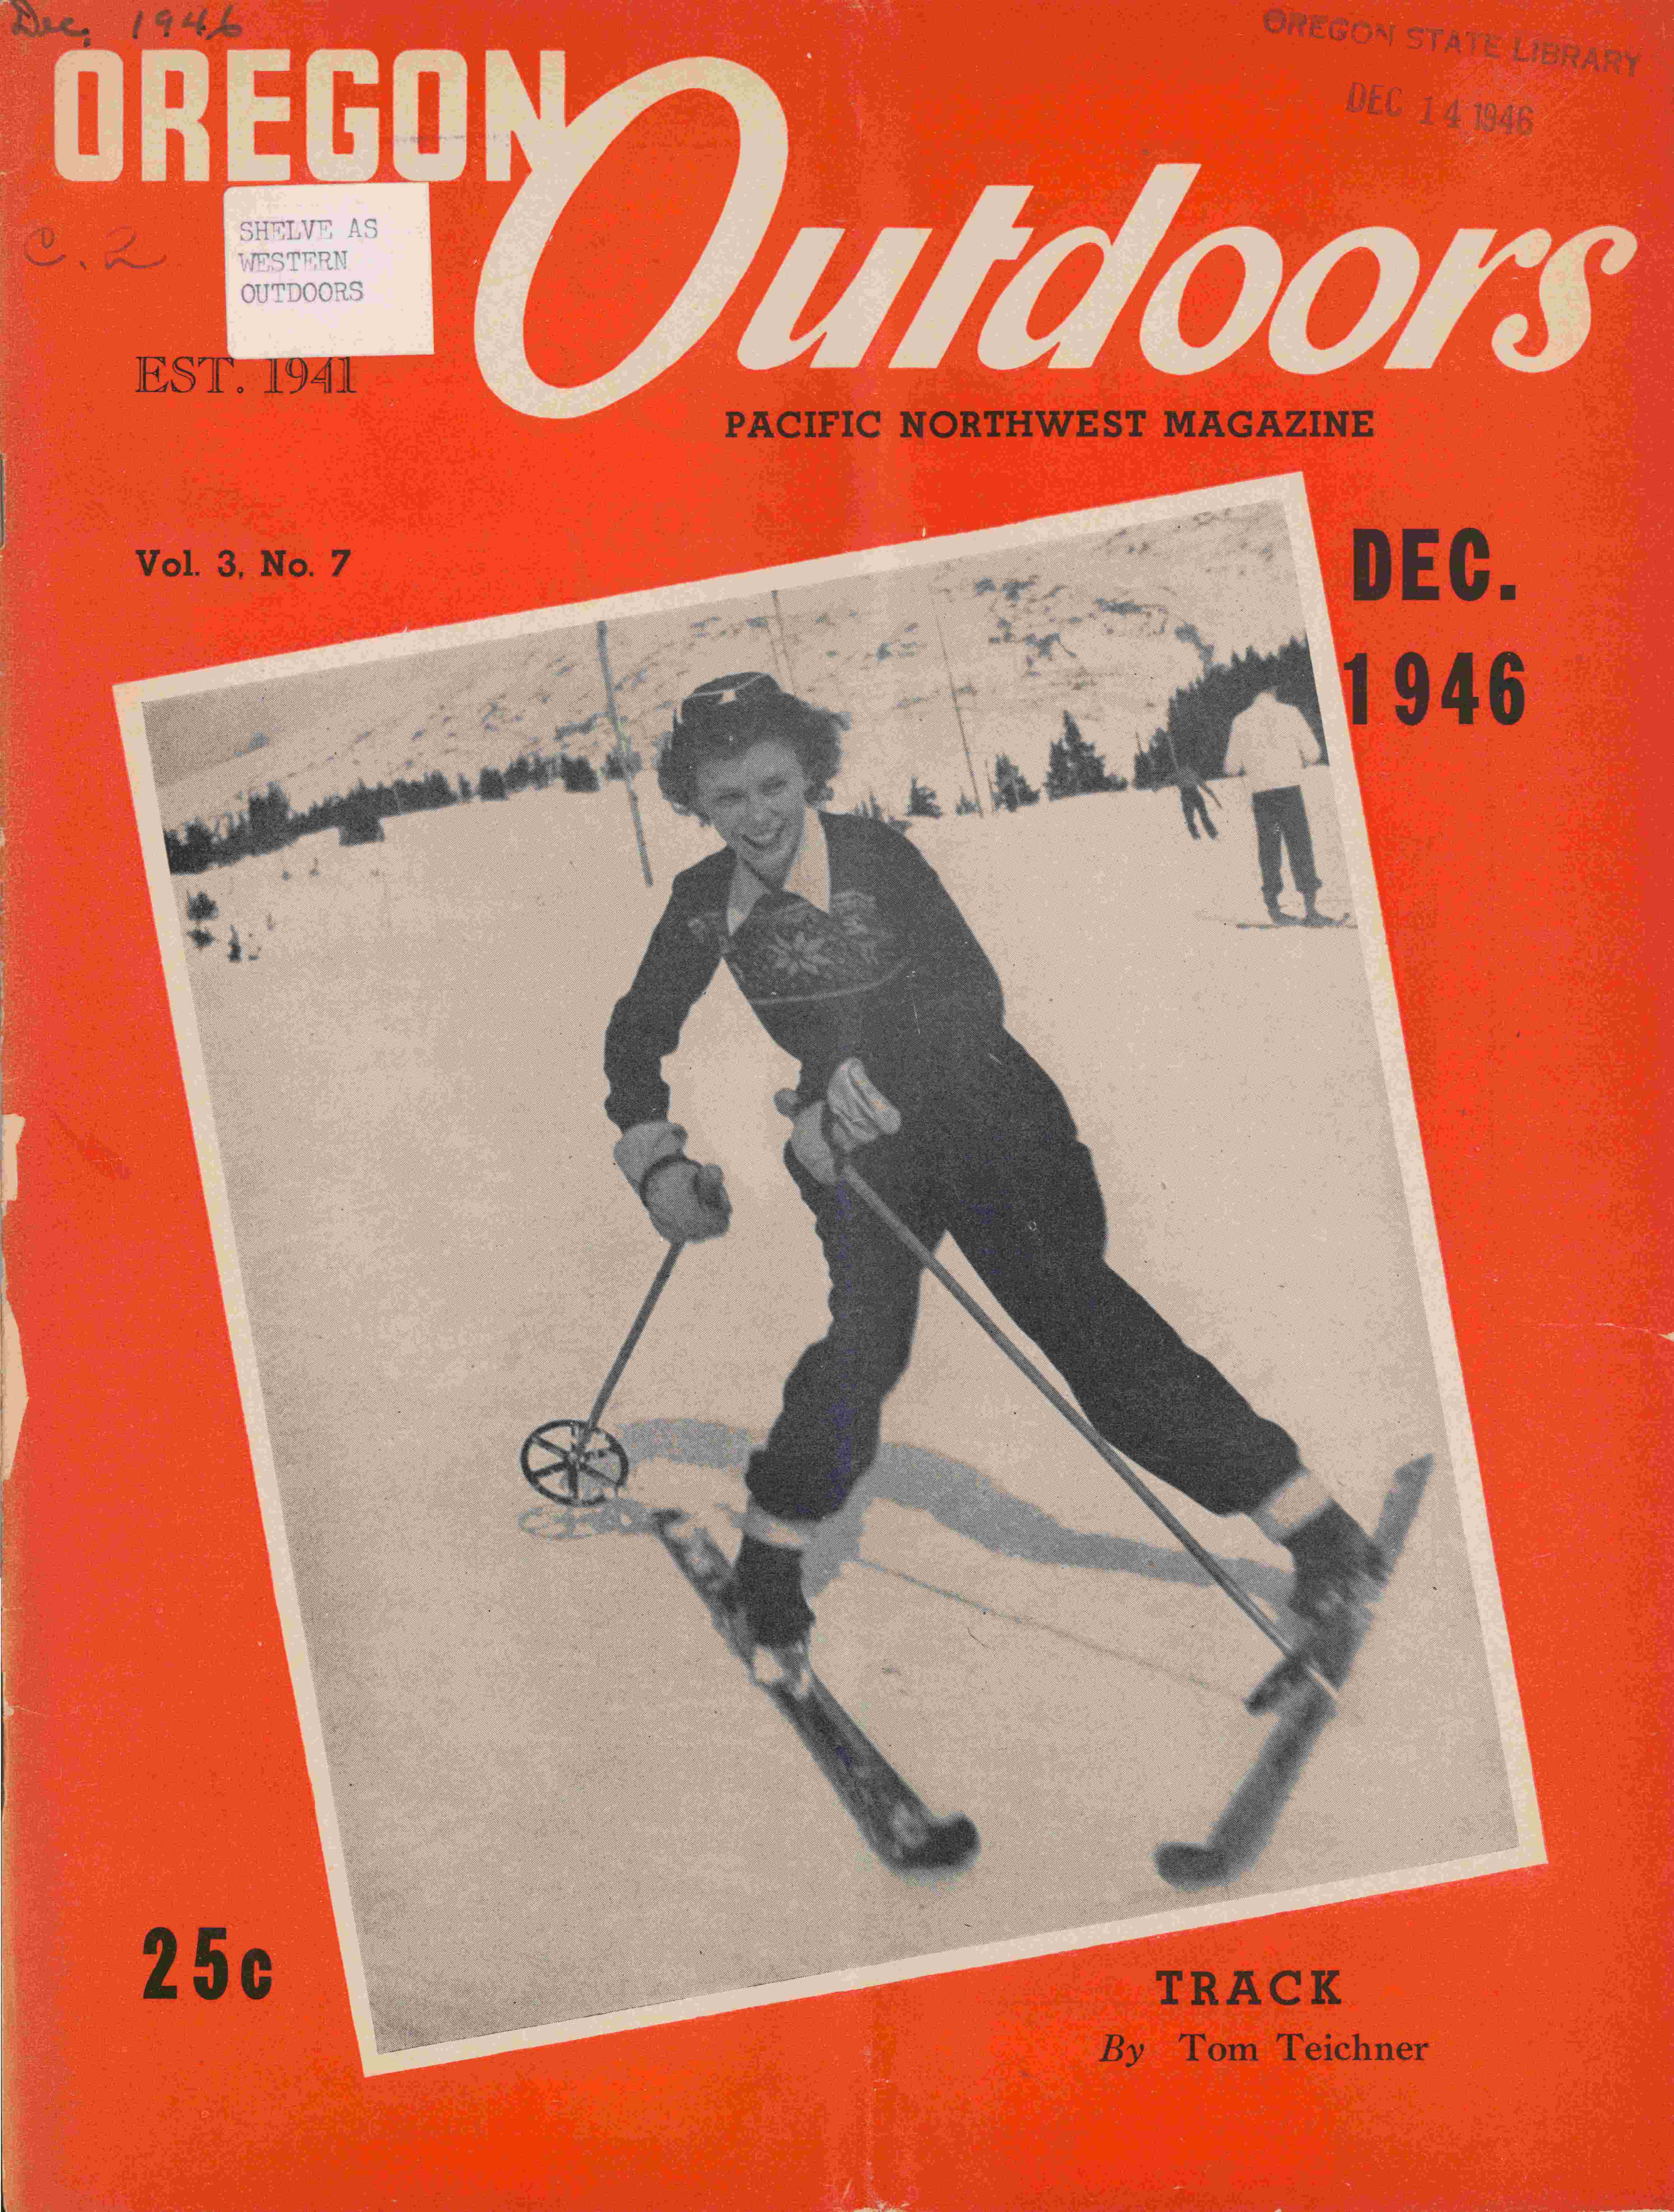 Cover of Oregon Outdoors magazine from Dec. 1946